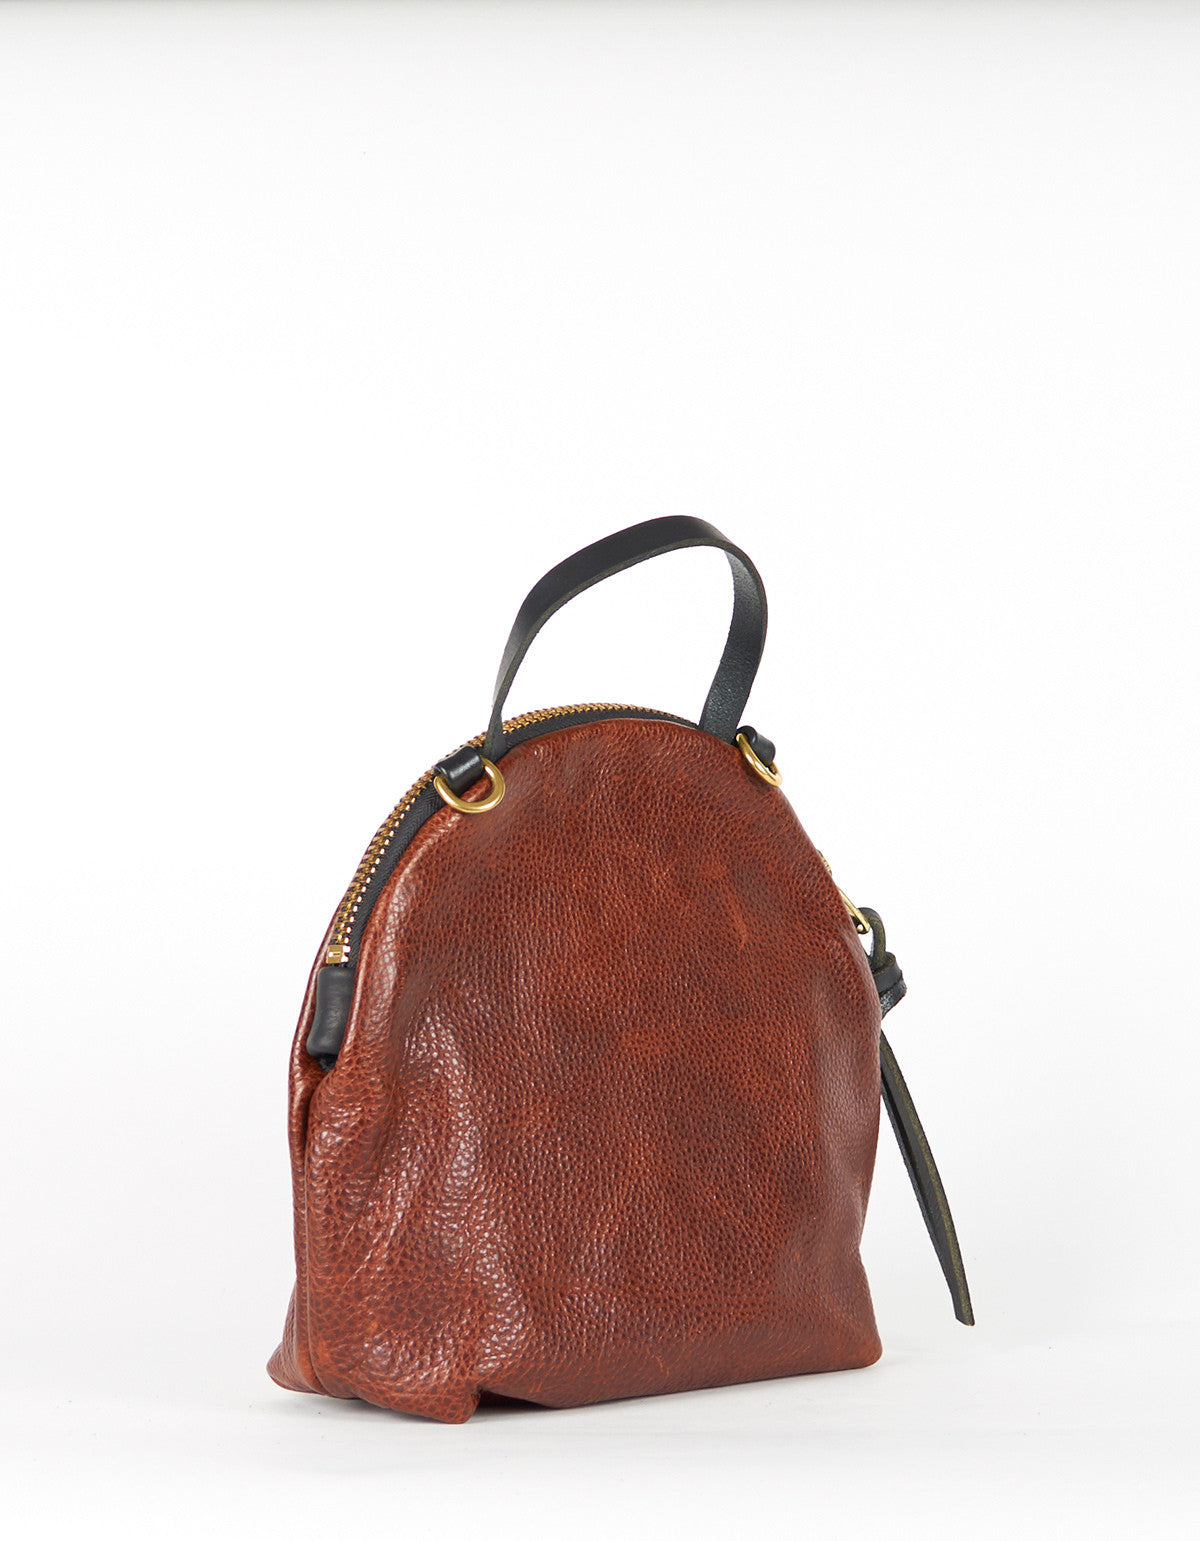 Eleven Thirty Anni Mini Bag Cognac - Still Life - 2